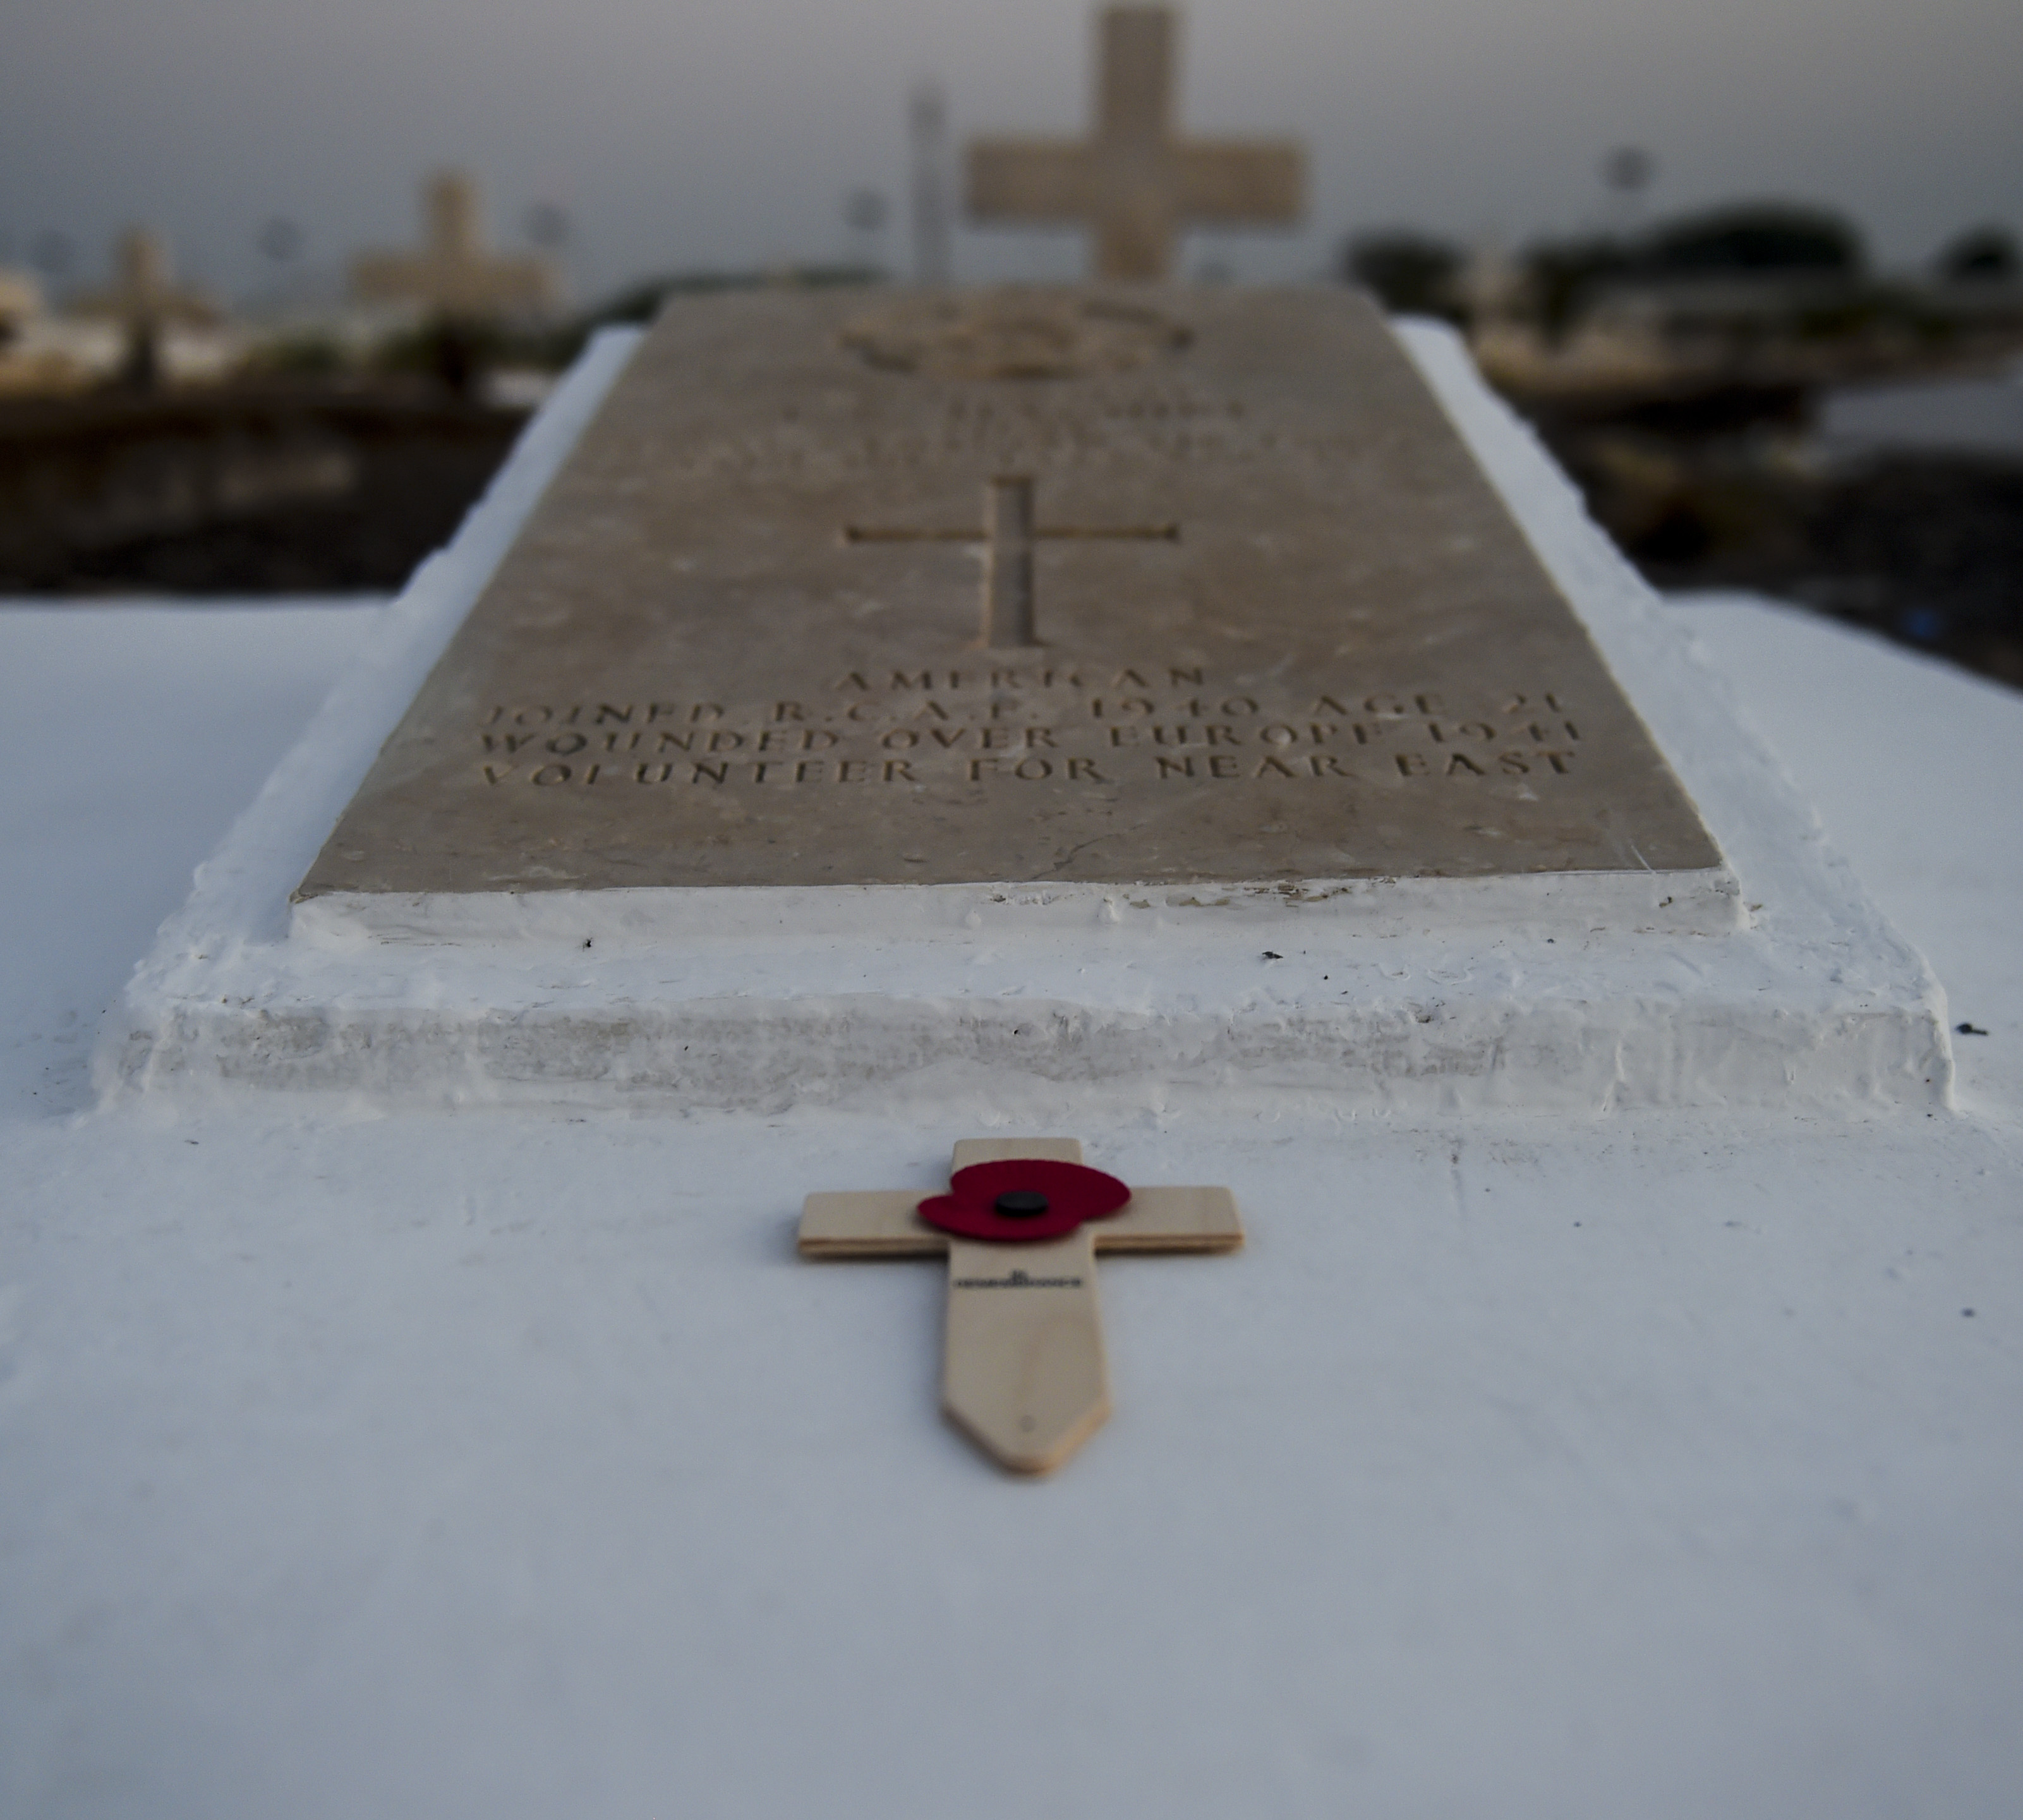 A cross with a poppy lies on grave of former Royal Canadian Air Force Pilot Lawrence Maguire during a Remembrance Day ceremony at the Djibouti New European Cemetery near Camp Lemonnier, Djibouti, Nov. 7, 2017. Maguire was the first member of the RCAF who was killed in action in the African theater of operations and was one of thousands of Americans who volunteered to fight for the RCAF in World War II before the U.S. officially entered the war. Remembrance Day is held annually in honor of the military men and women who have lost their lives in the line of duty. (U.S. Air Force photo by Staff Sgt. Timothy Moore)